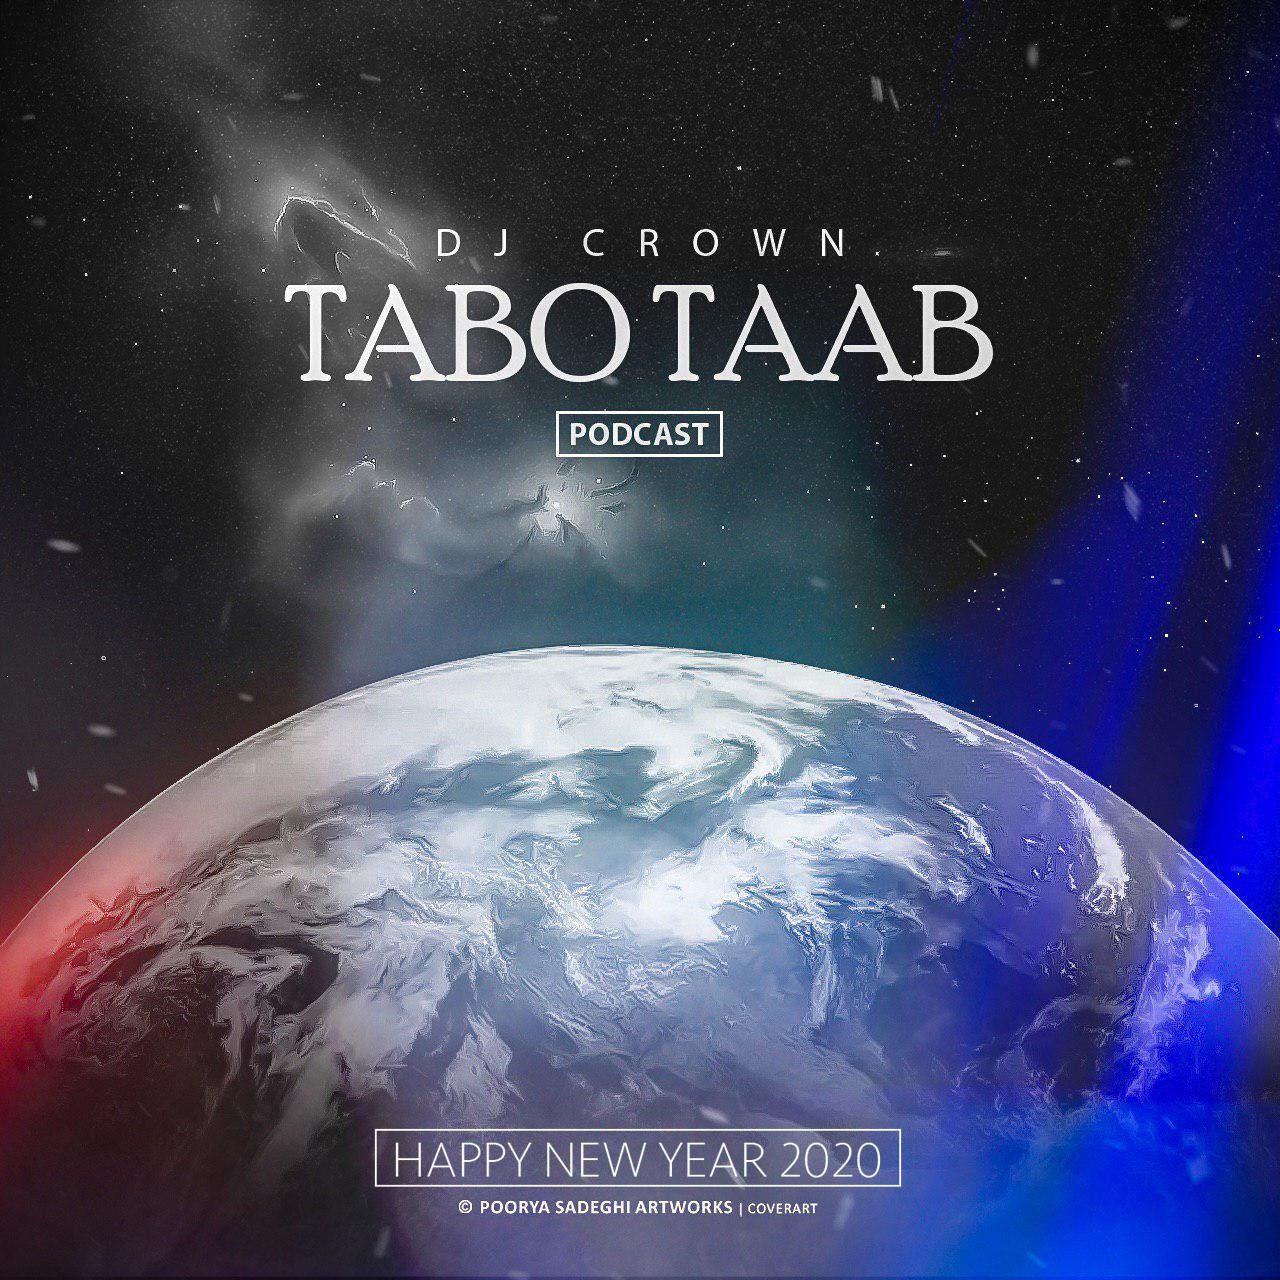 Dj Crown – Tabotaab Podcast